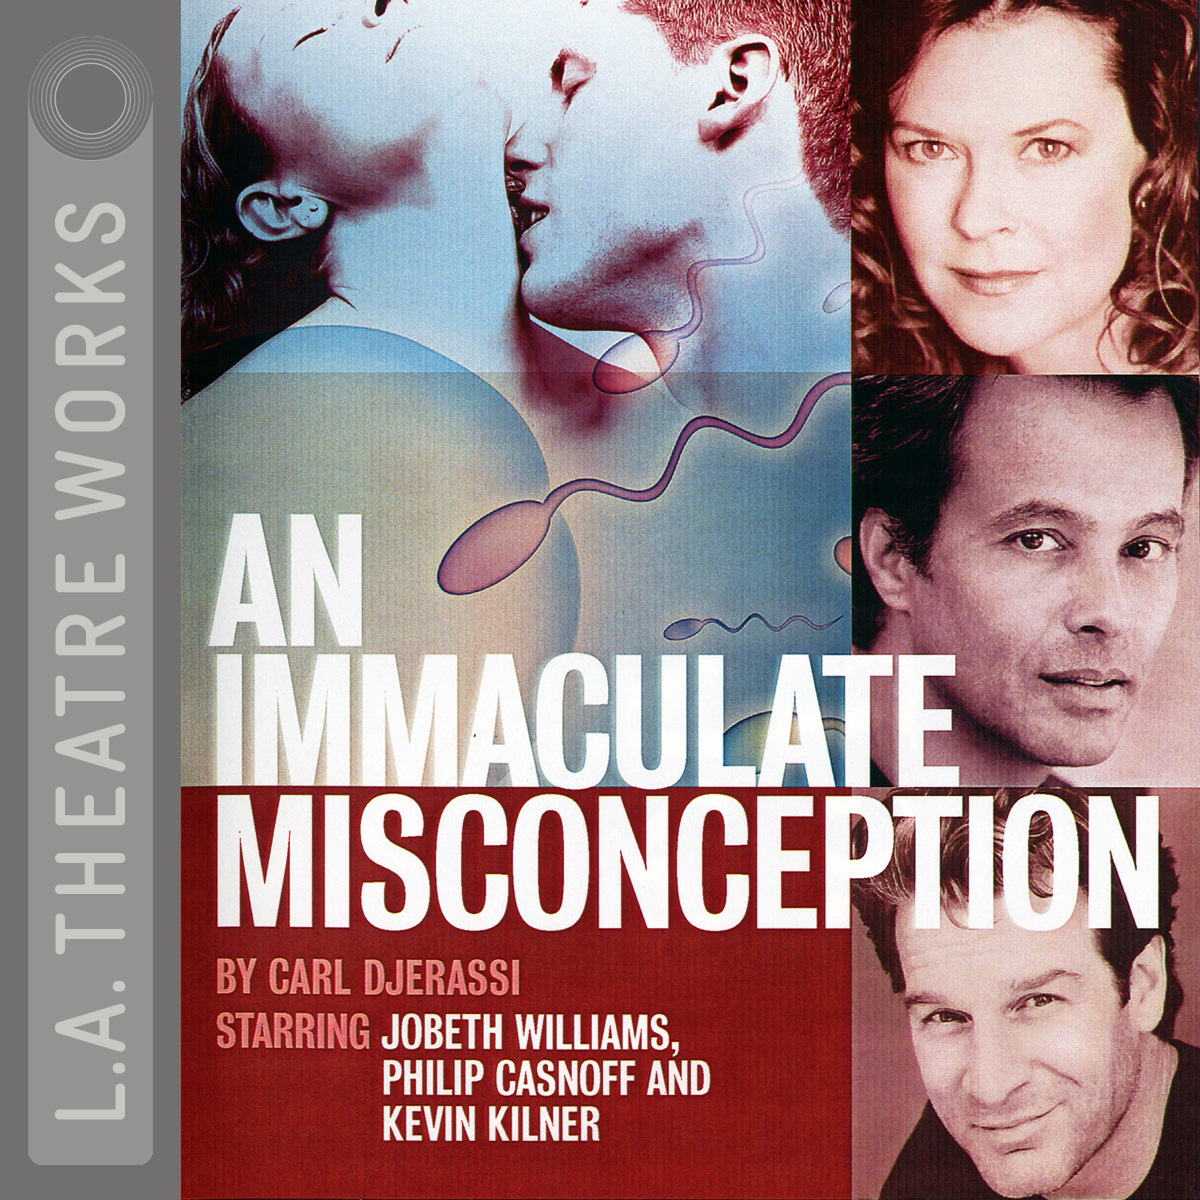 Printable An Immaculate Misconception: Sex in an Age of Mechanical Reproduction Audiobook Cover Art